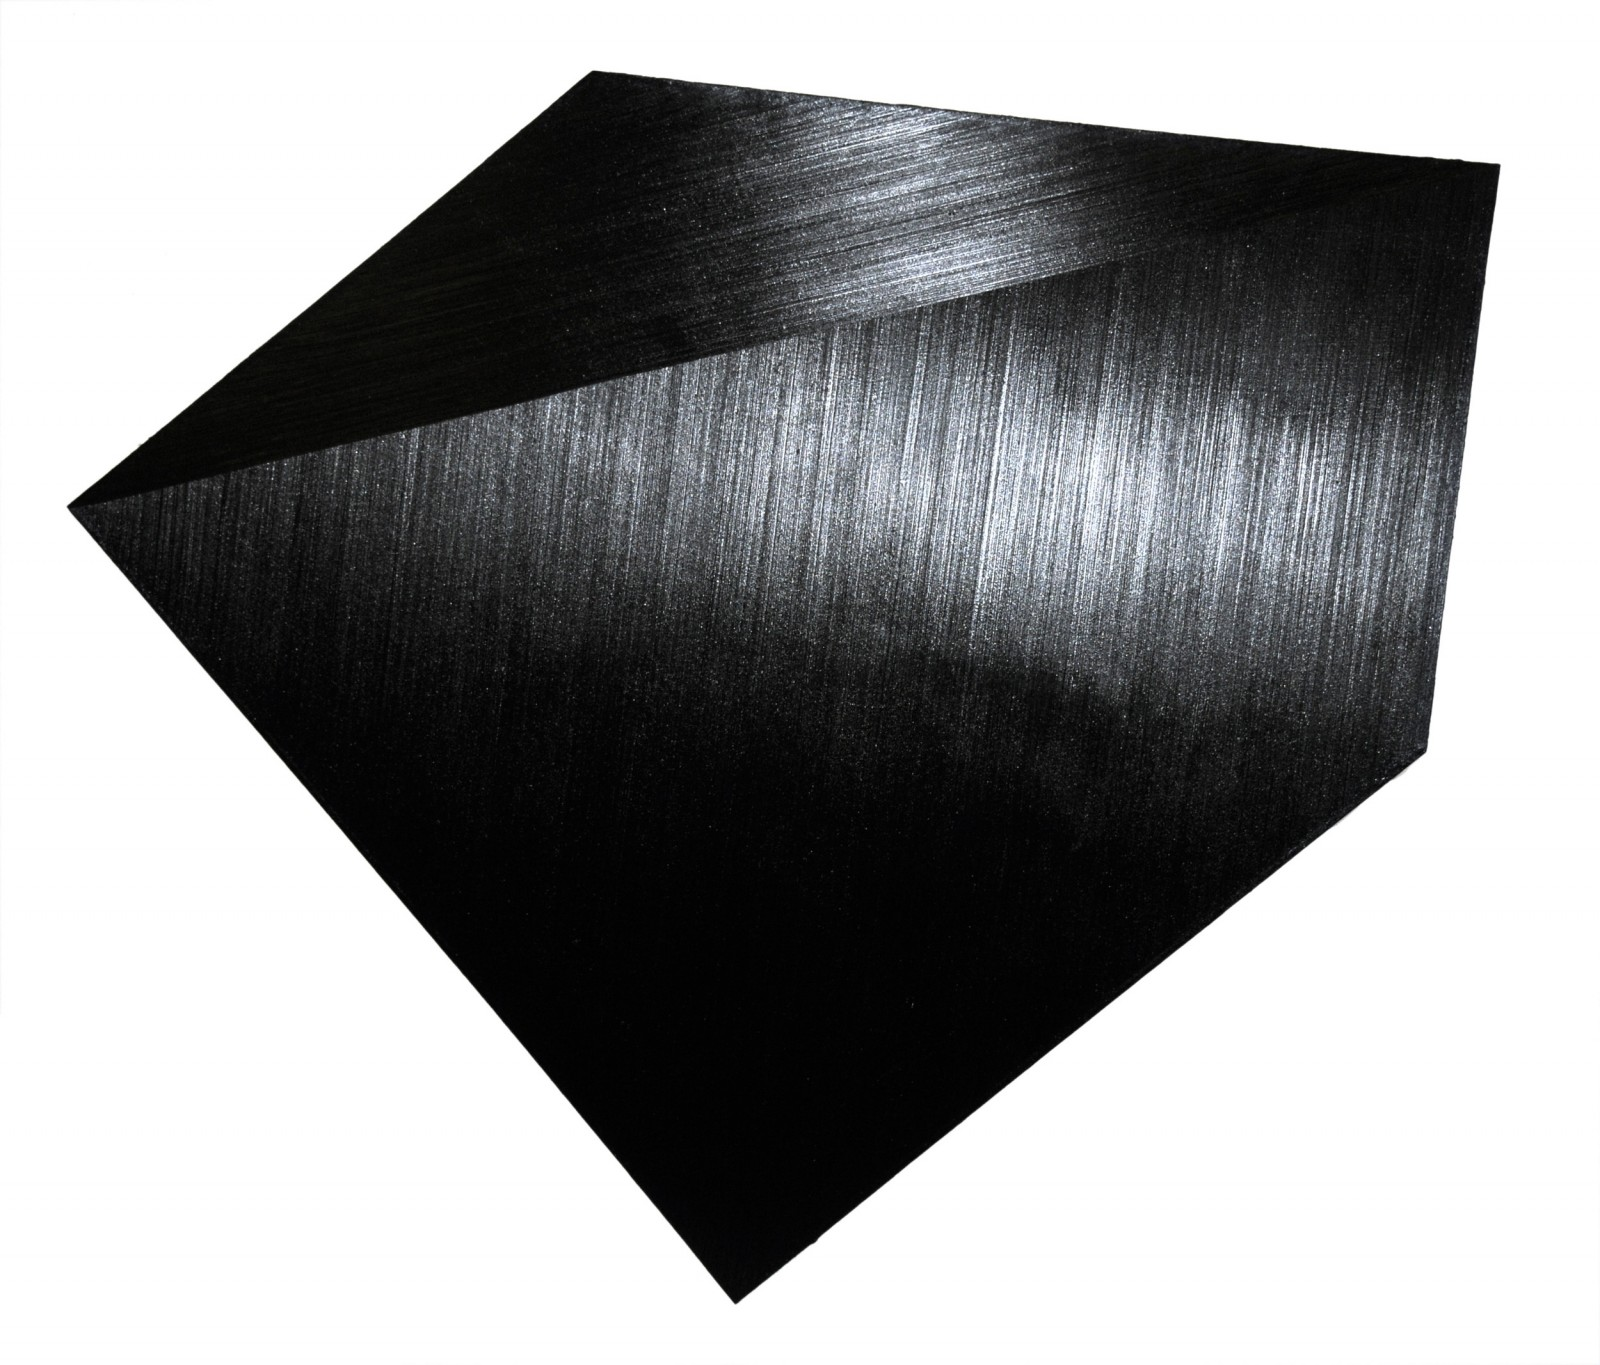 Black. Pentagon (8), 2008, oil on canvas, 171 x 201 cm